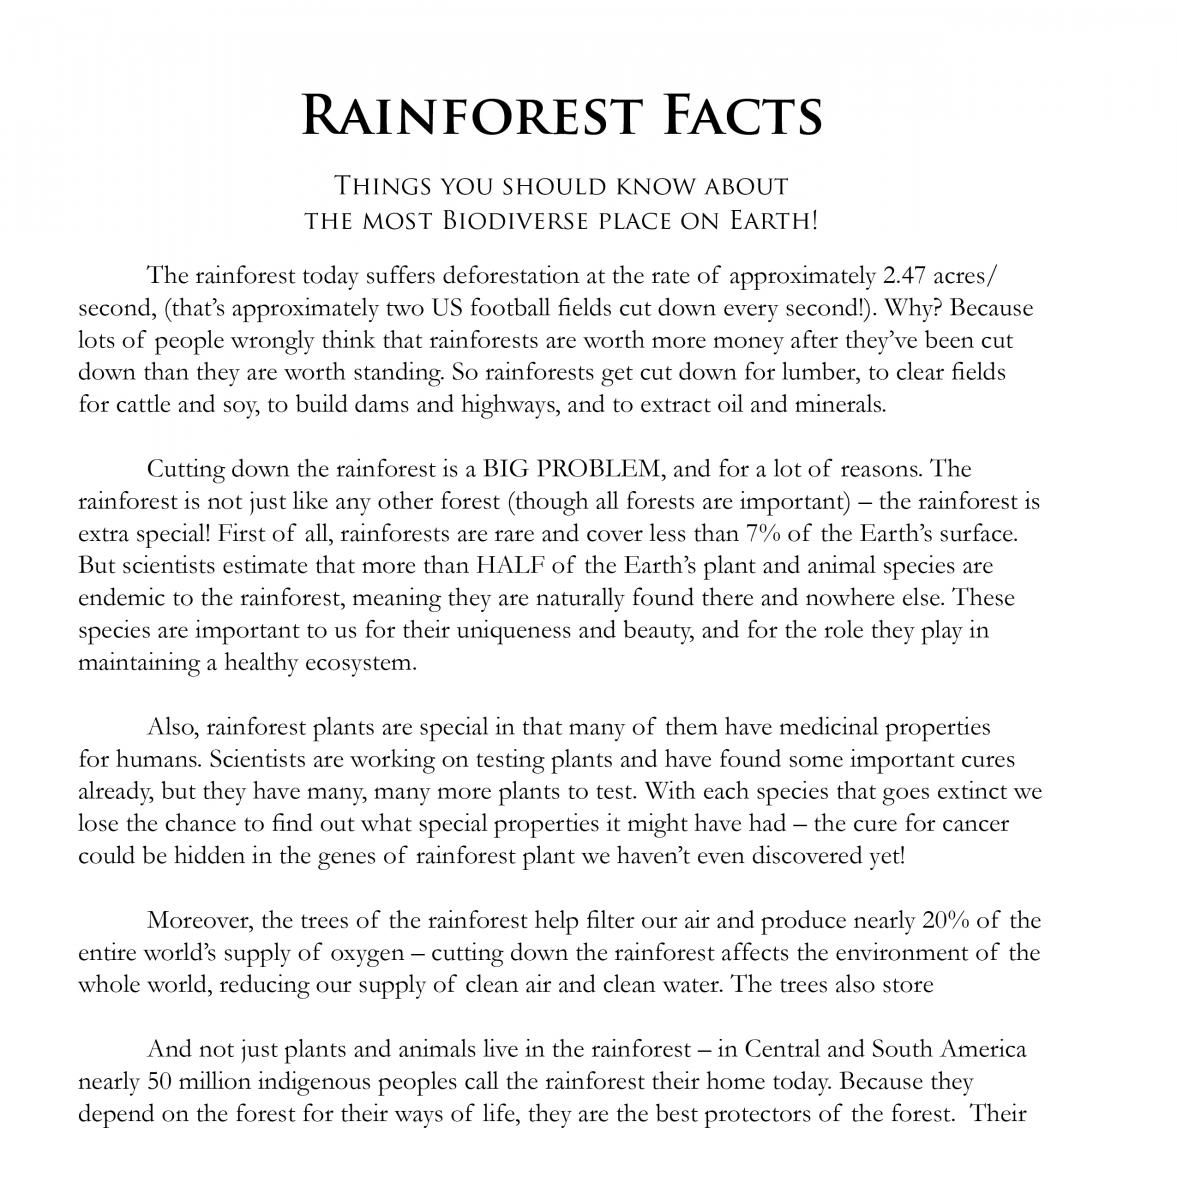 worksheet Tropical Rainforest Worksheet rainforest games and worksheet activities foundation us us